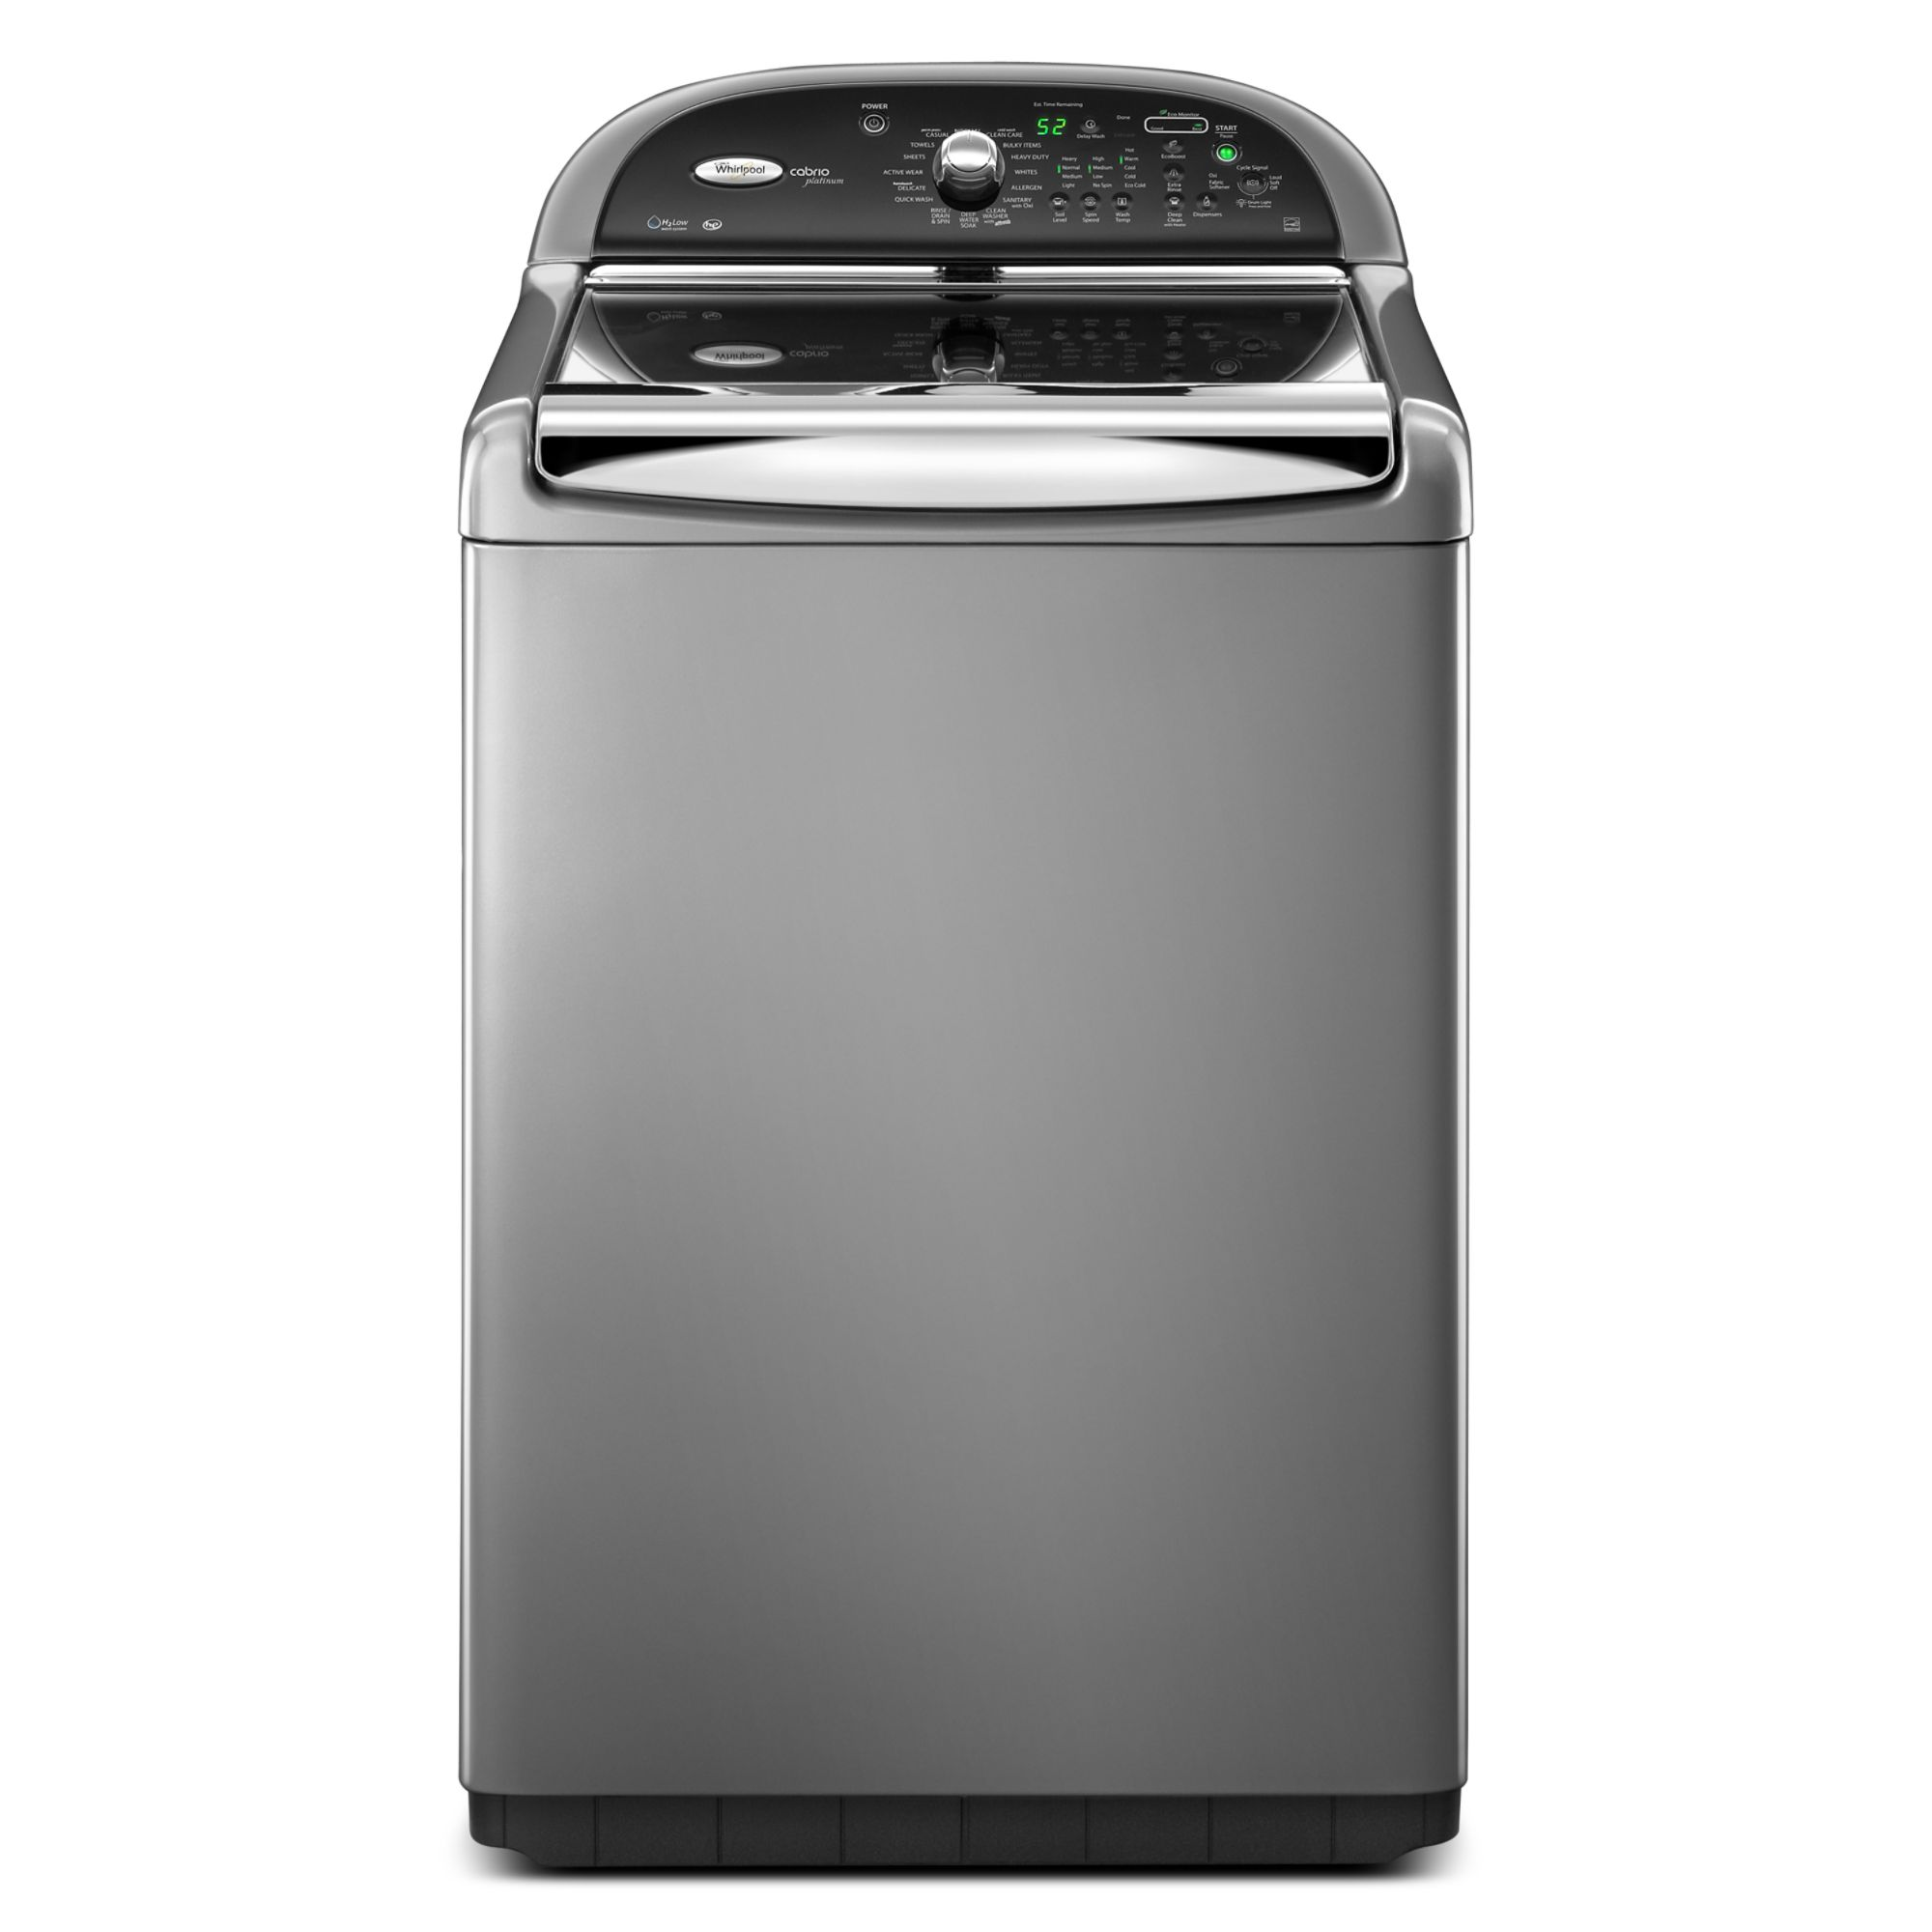 Whirlpool 4 6 Cu Ft Top Load High Efficiency Washer Feedset - Top Loading Washers